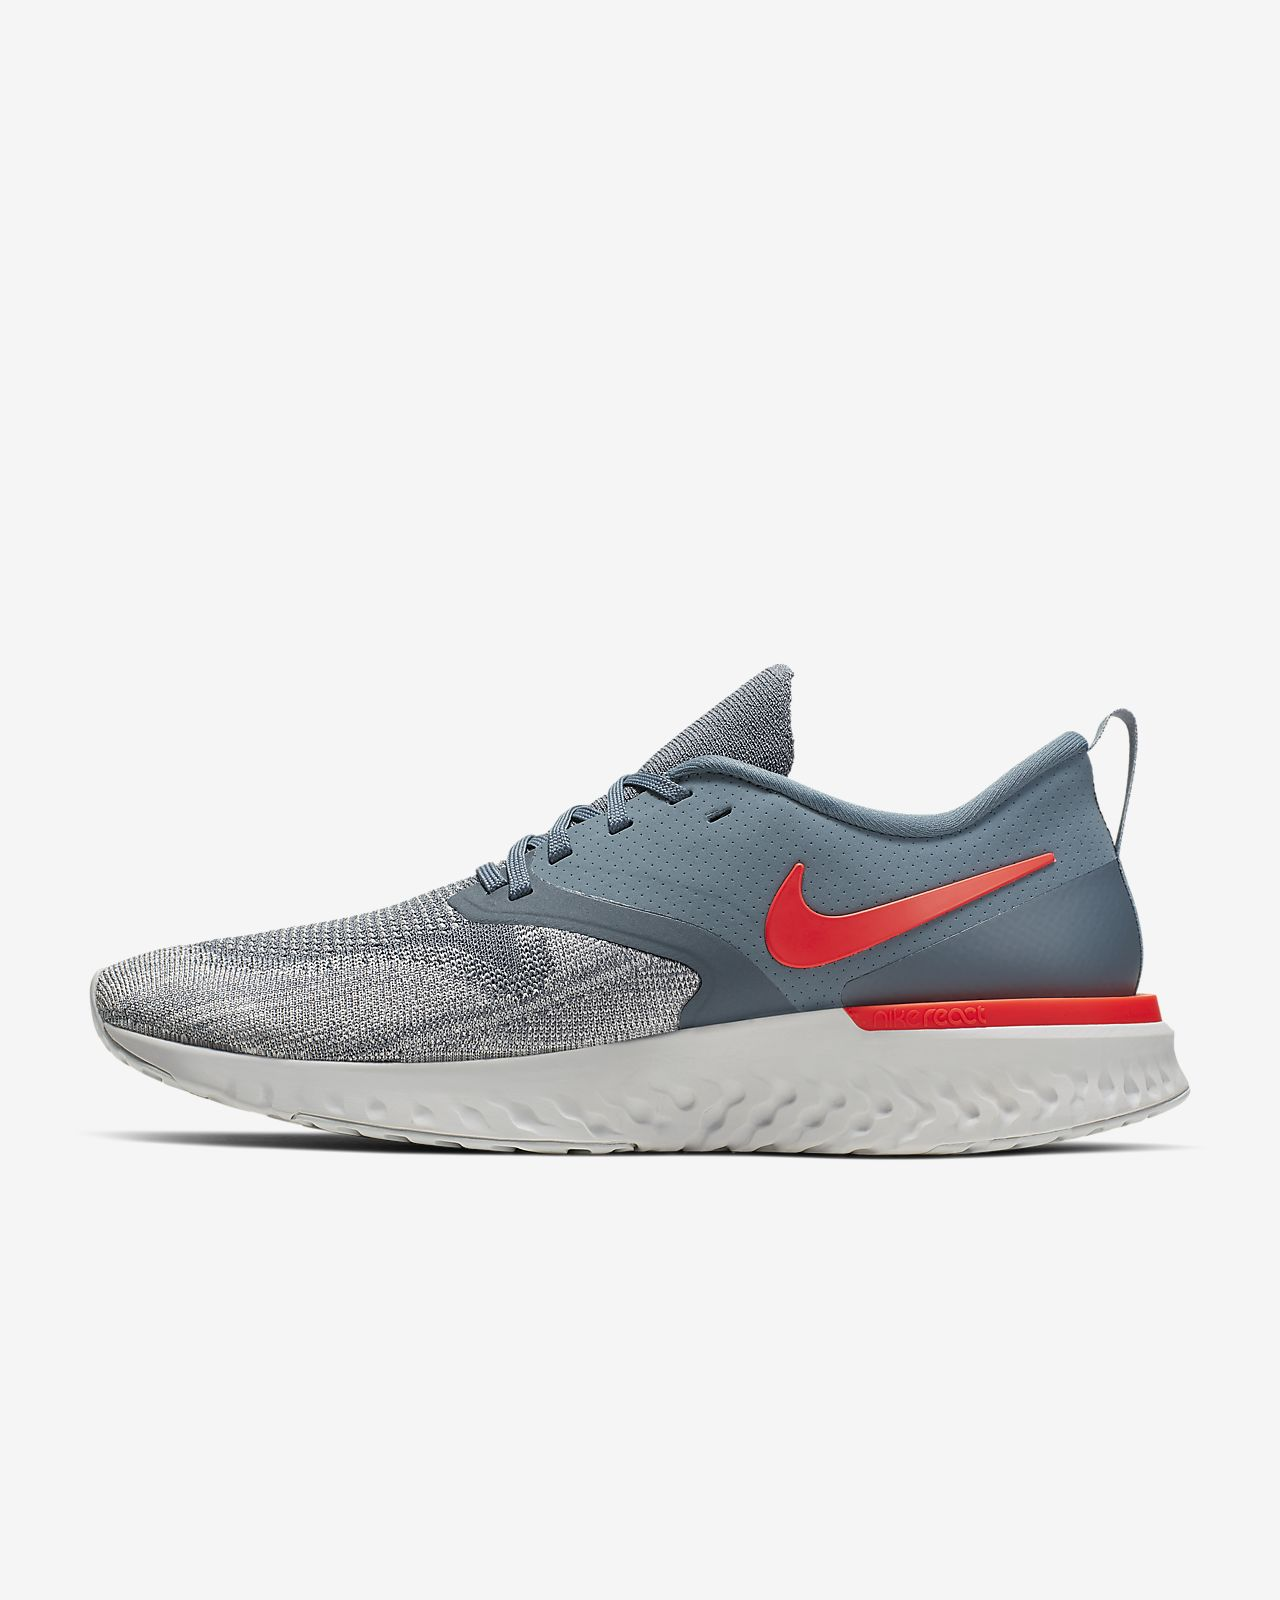 buy popular a8a50 38fa3 ... Nike Odyssey React Flyknit 2 Mens Running Shoe